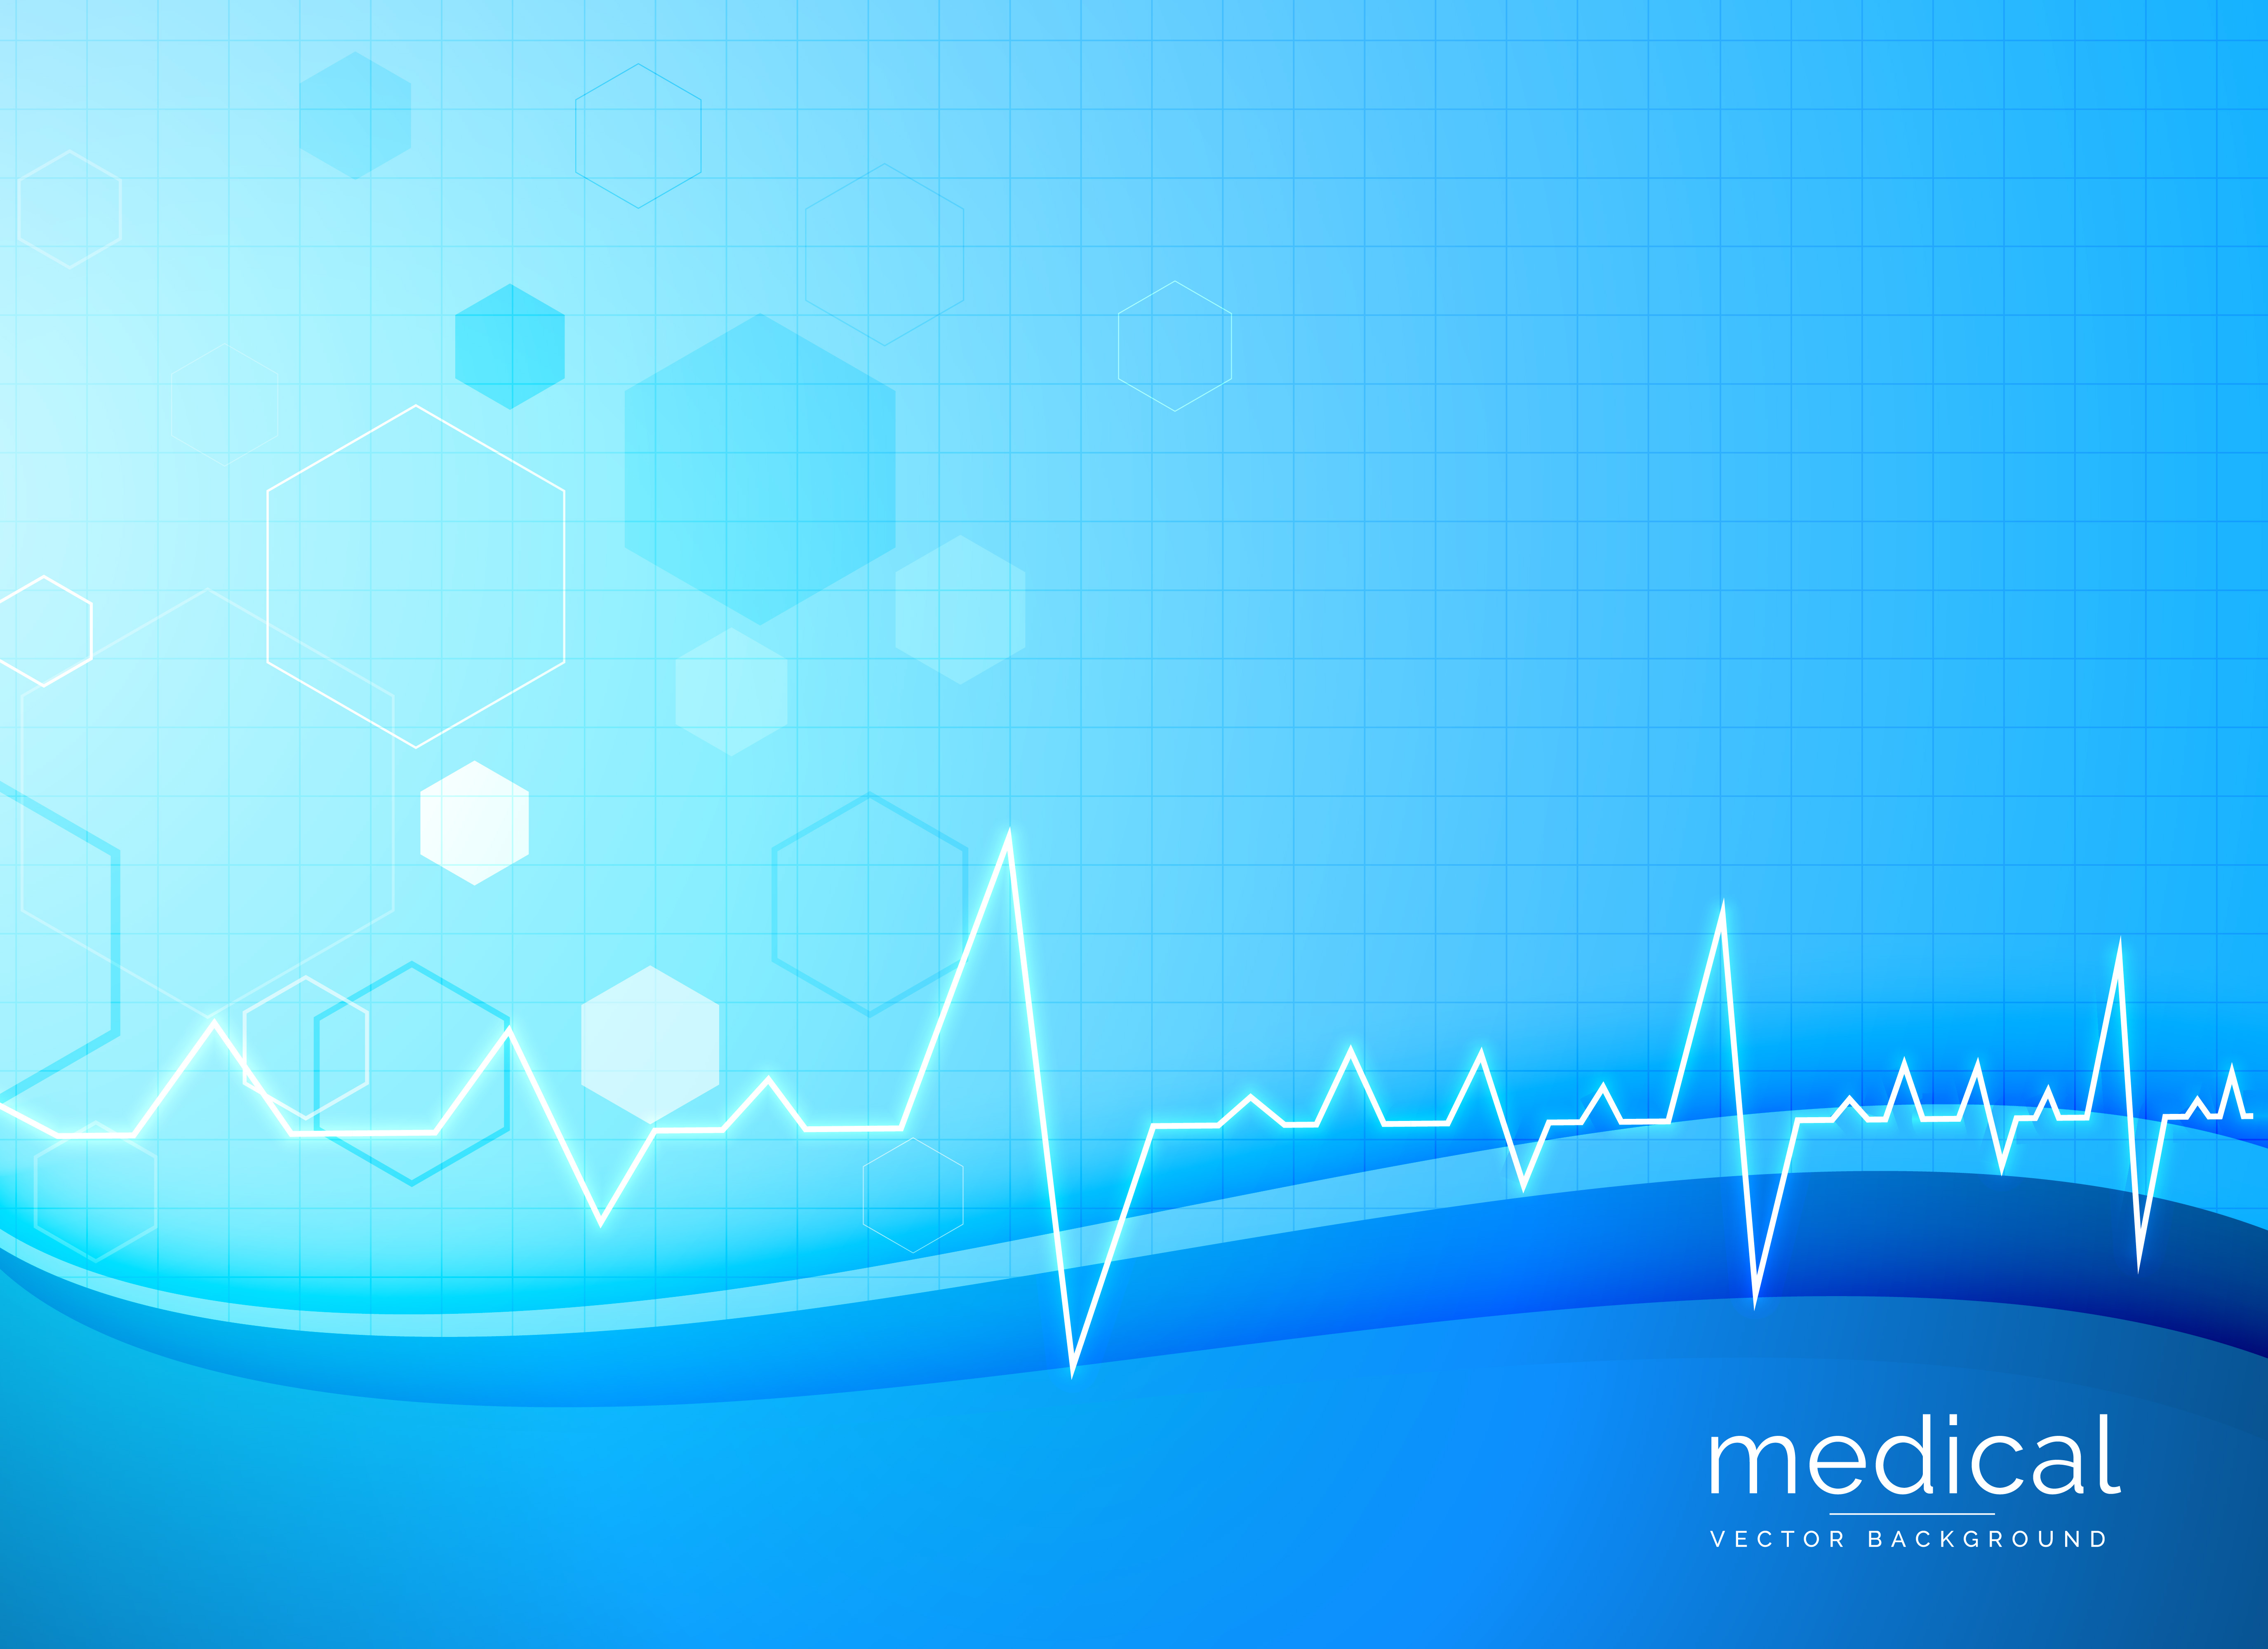 vector-medical-background-with-blue-wavy-shape.jpg